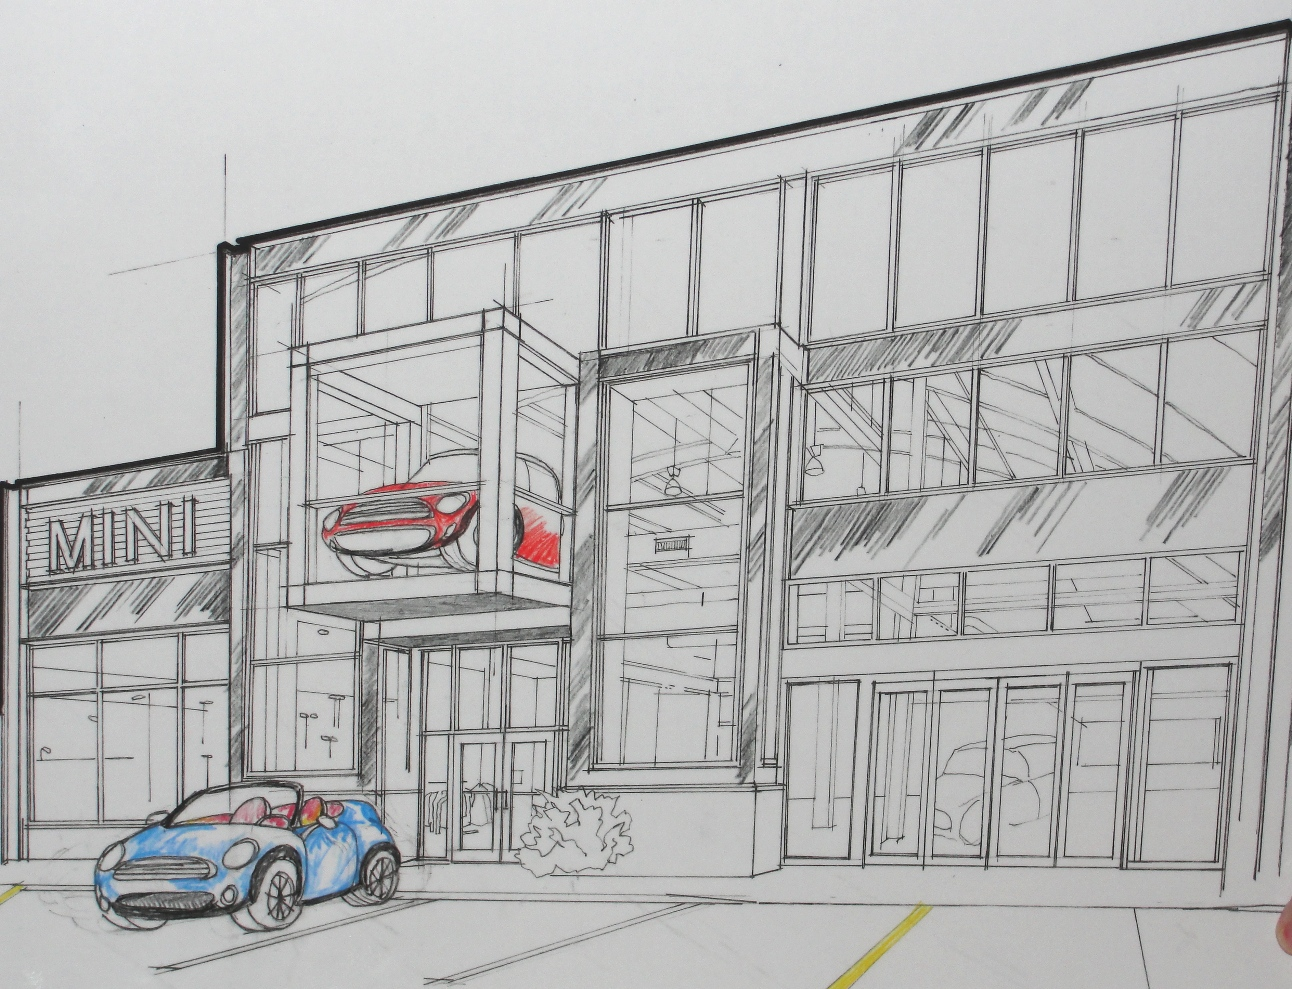 Willis Auto Campus >> Willis Auto Campus Concept Drawings Eastern Iowa Minis A